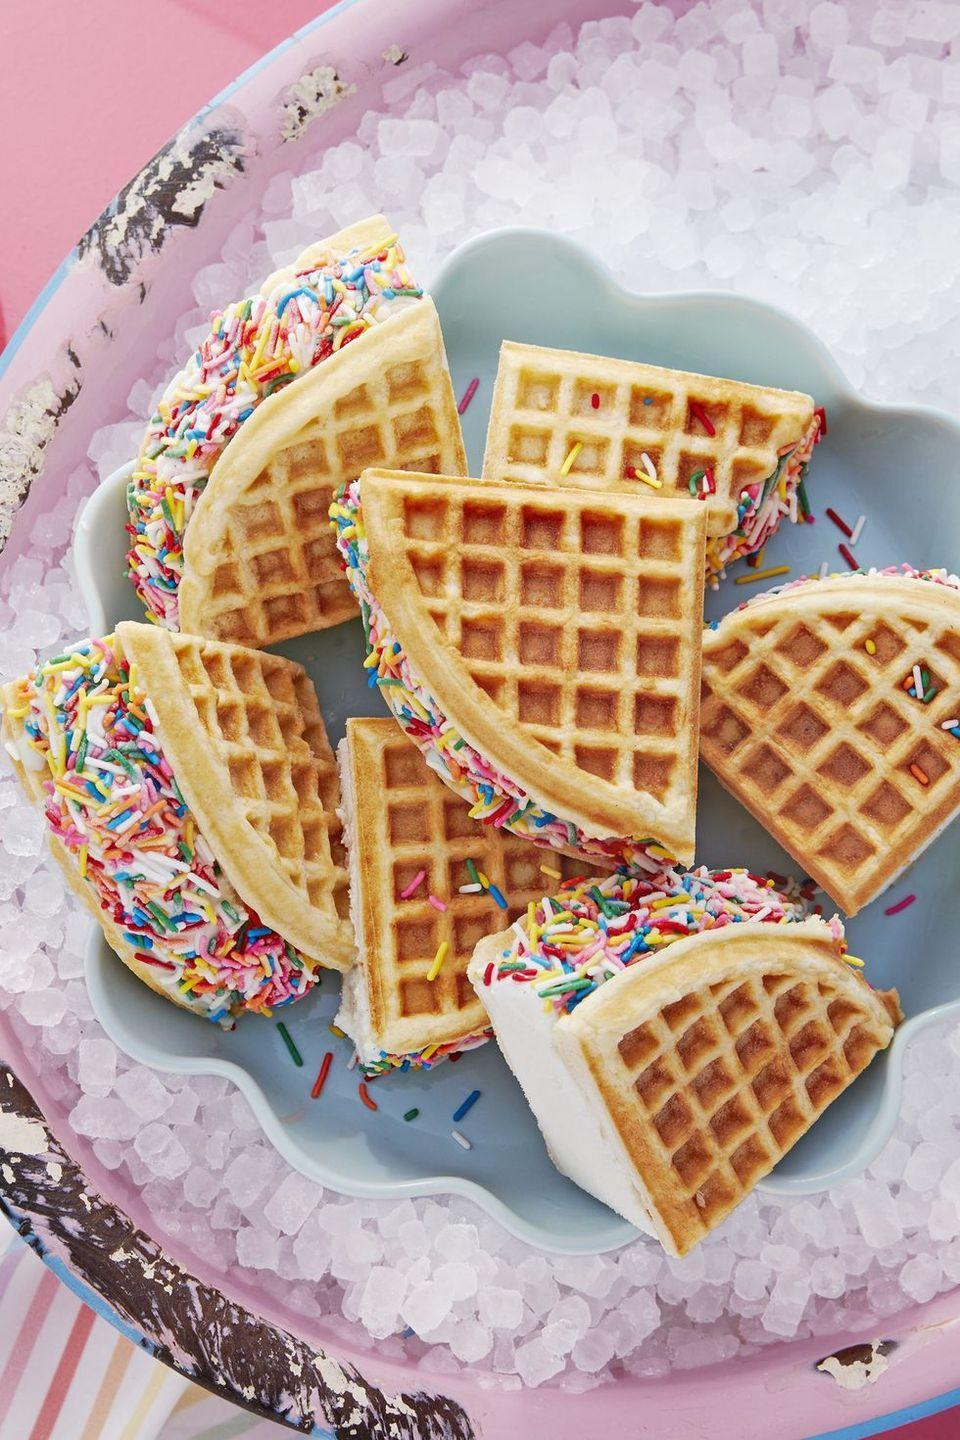 """<p>Sandwich homemade (or store-bought!) waffles with ice cream and roll in colorful sprinkles. </p><p><strong><a href=""""https://www.countryliving.com/food-drinks/a20748103/rainbow-waffle-sandwiches-recipe/"""" rel=""""nofollow noopener"""" target=""""_blank"""" data-ylk=""""slk:Get the recipe"""" class=""""link rapid-noclick-resp"""">Get the recipe</a>.</strong> </p>"""